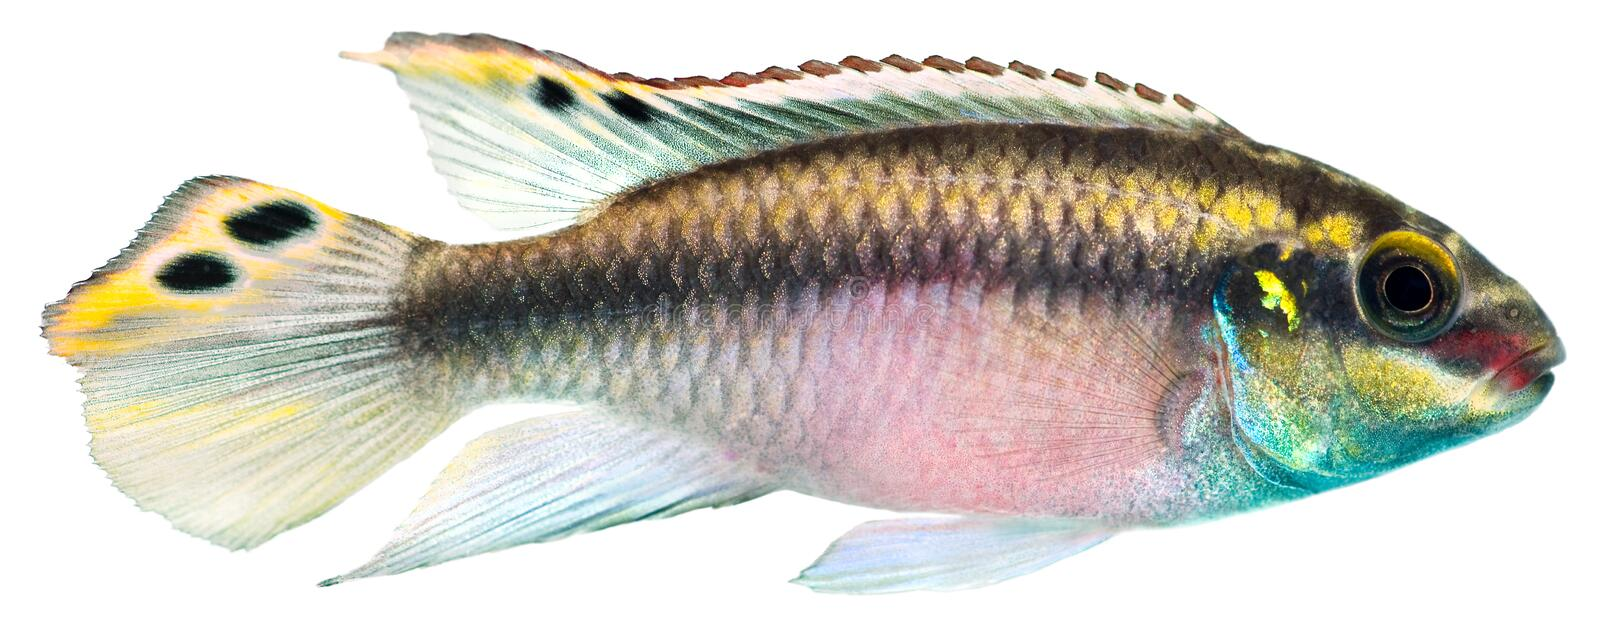 Kribensis Cichlid fish stock photo